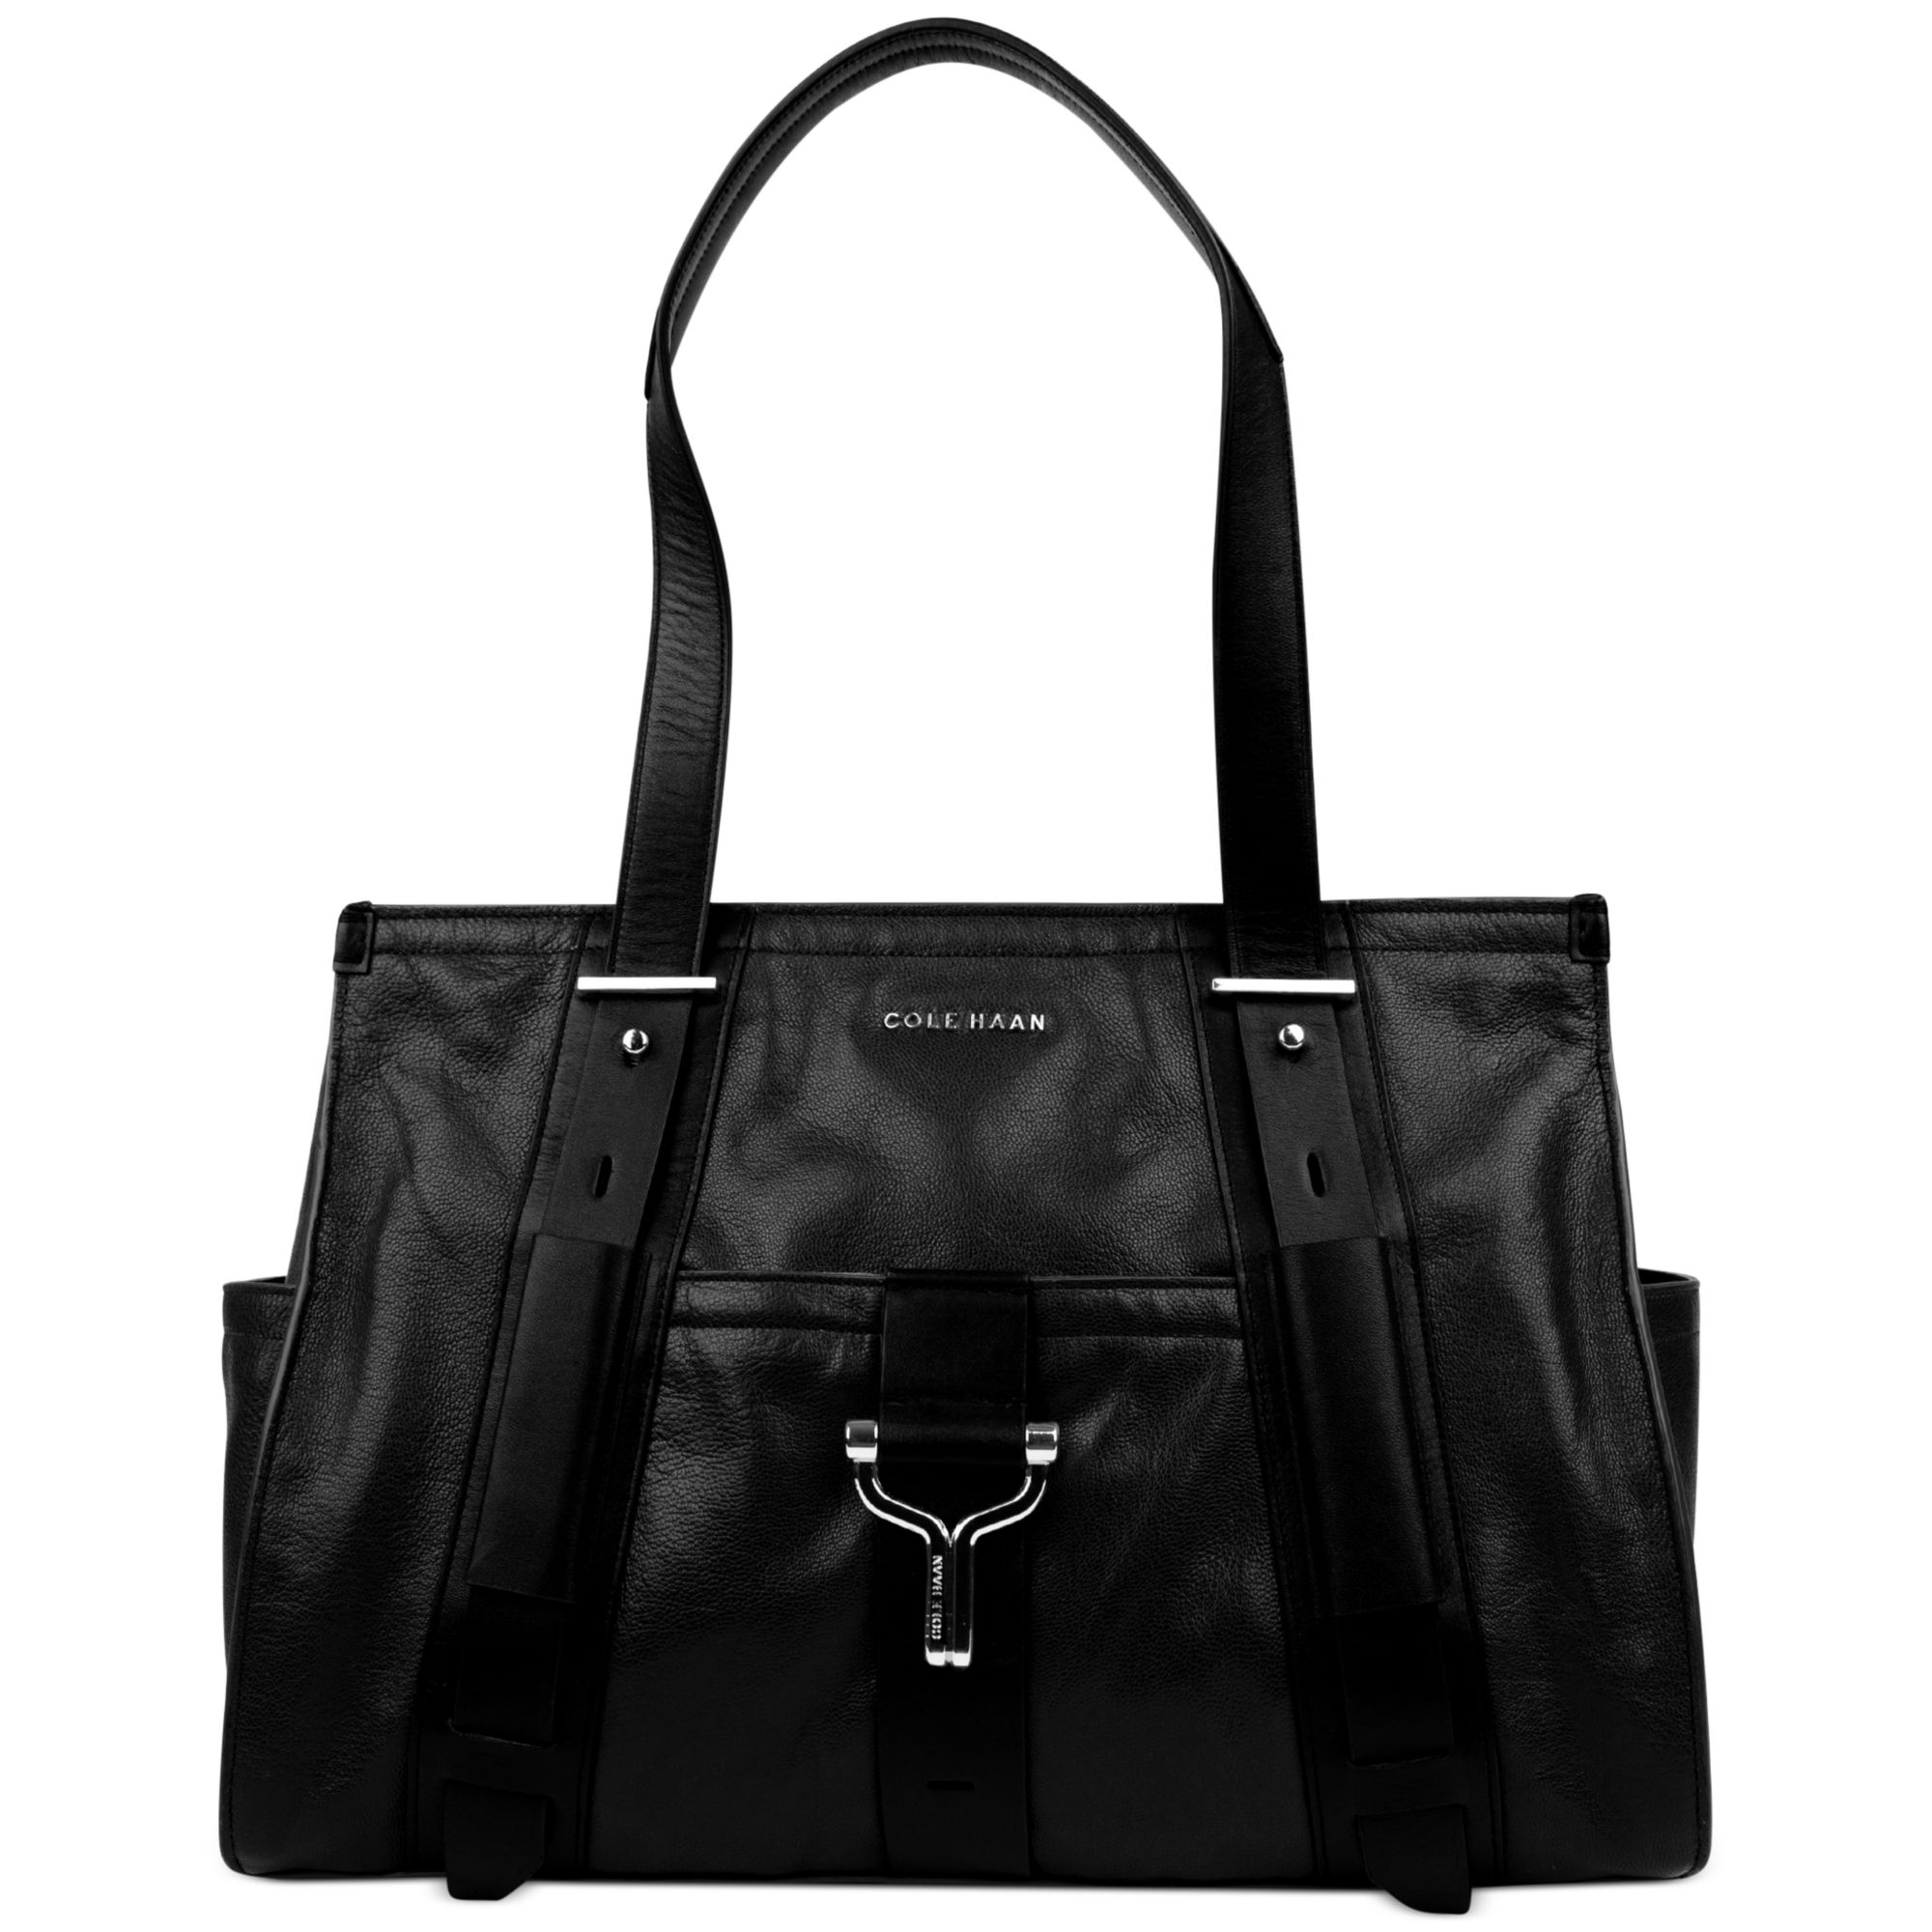 43160e6edc0a Lyst - Cole Haan Chesney Satchel in Black